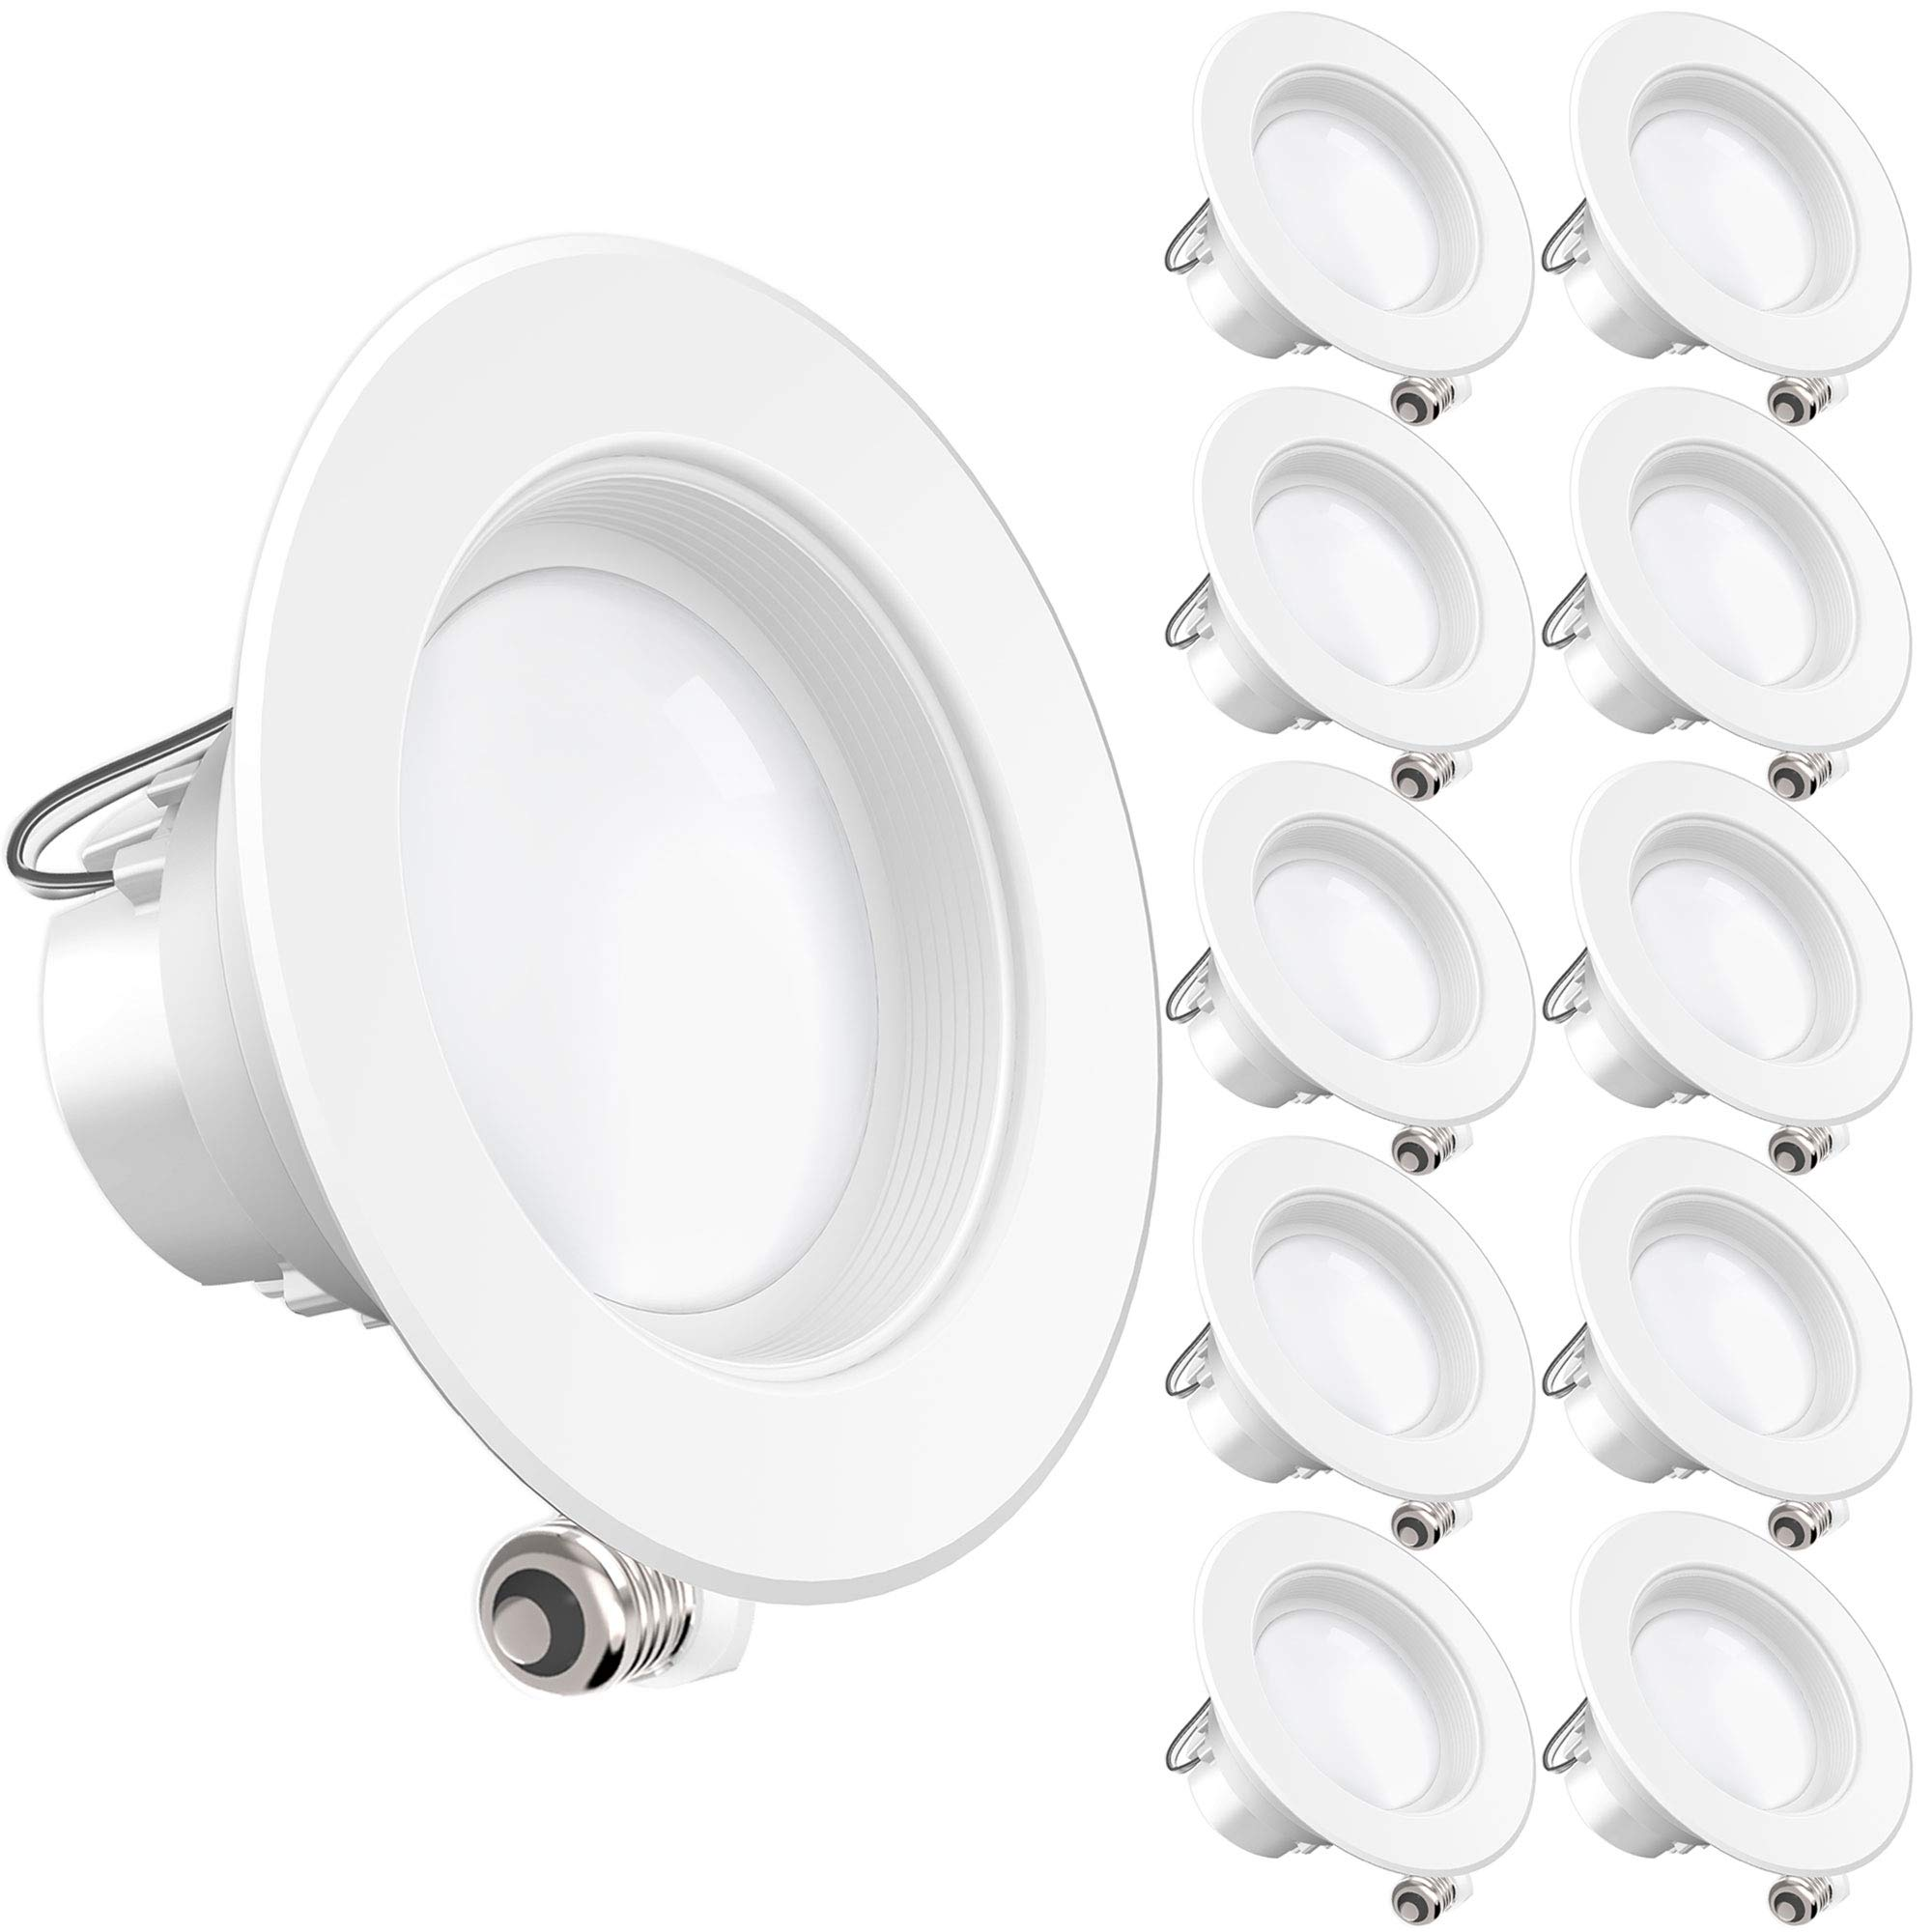 Sunco Lighting 10 Pack 4 Inch Baffle Recessed Retrofit Kit Dimmable LED Light, 11W (40W Replacement), 5000K Kelvin Daylight, Quick/Easy Can Install, 660 Lumen, Wet Rated by Sunco Lighting (Image #1)